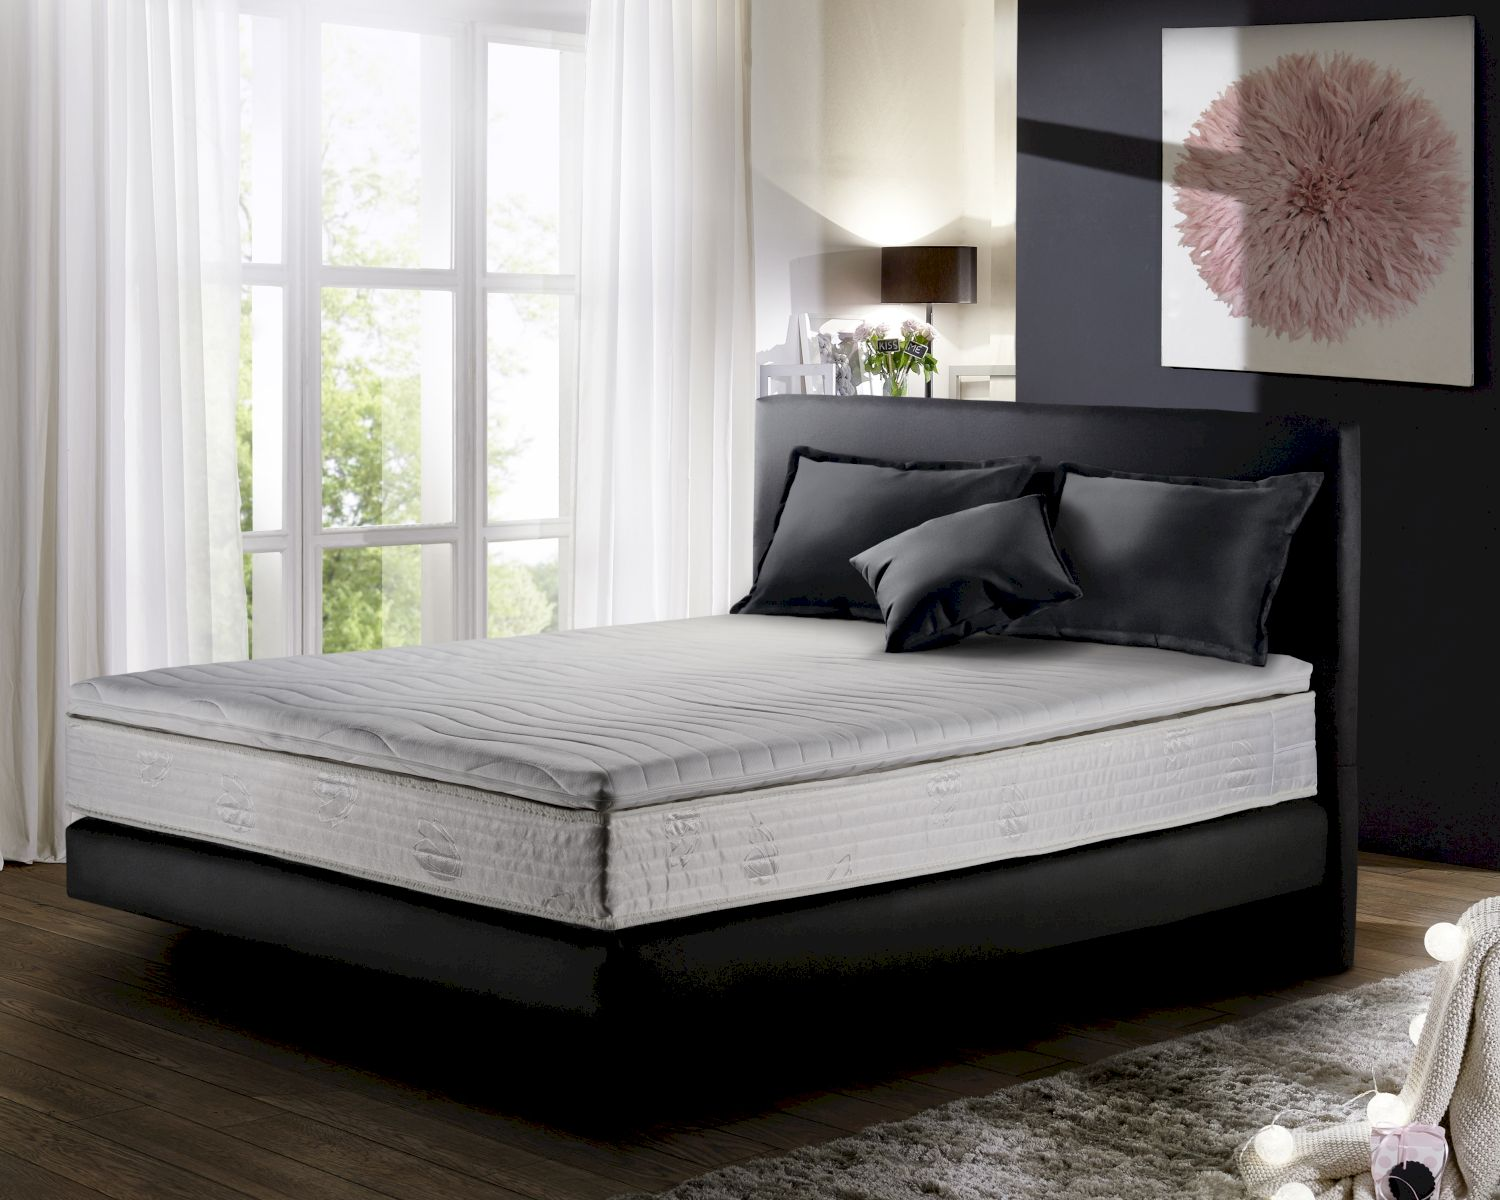 winkle boxspringbett bronx mit bettkasten. Black Bedroom Furniture Sets. Home Design Ideas